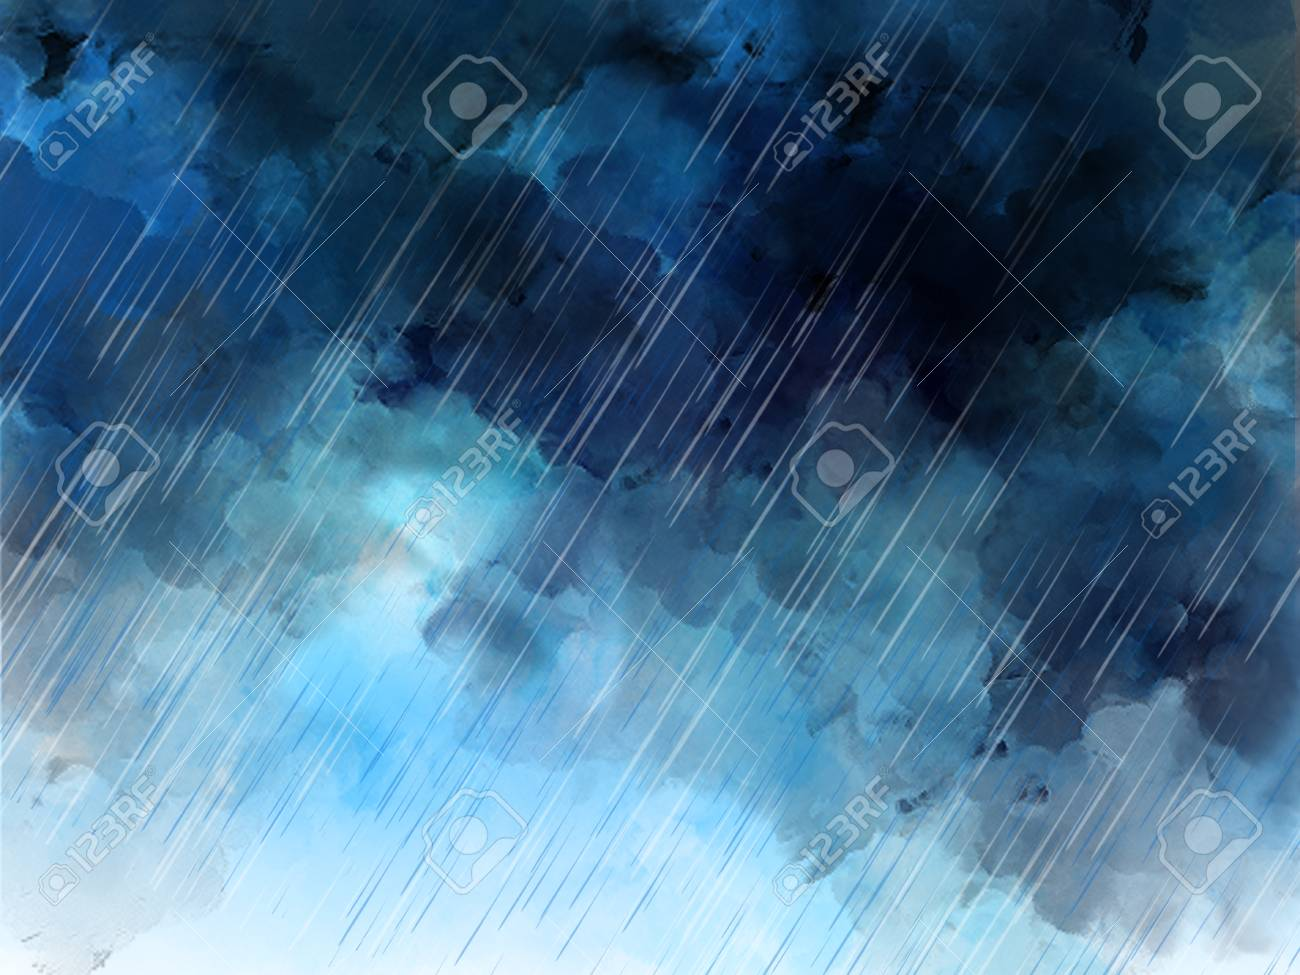 watercolor graphic illustration of heavy rain sky blue raining